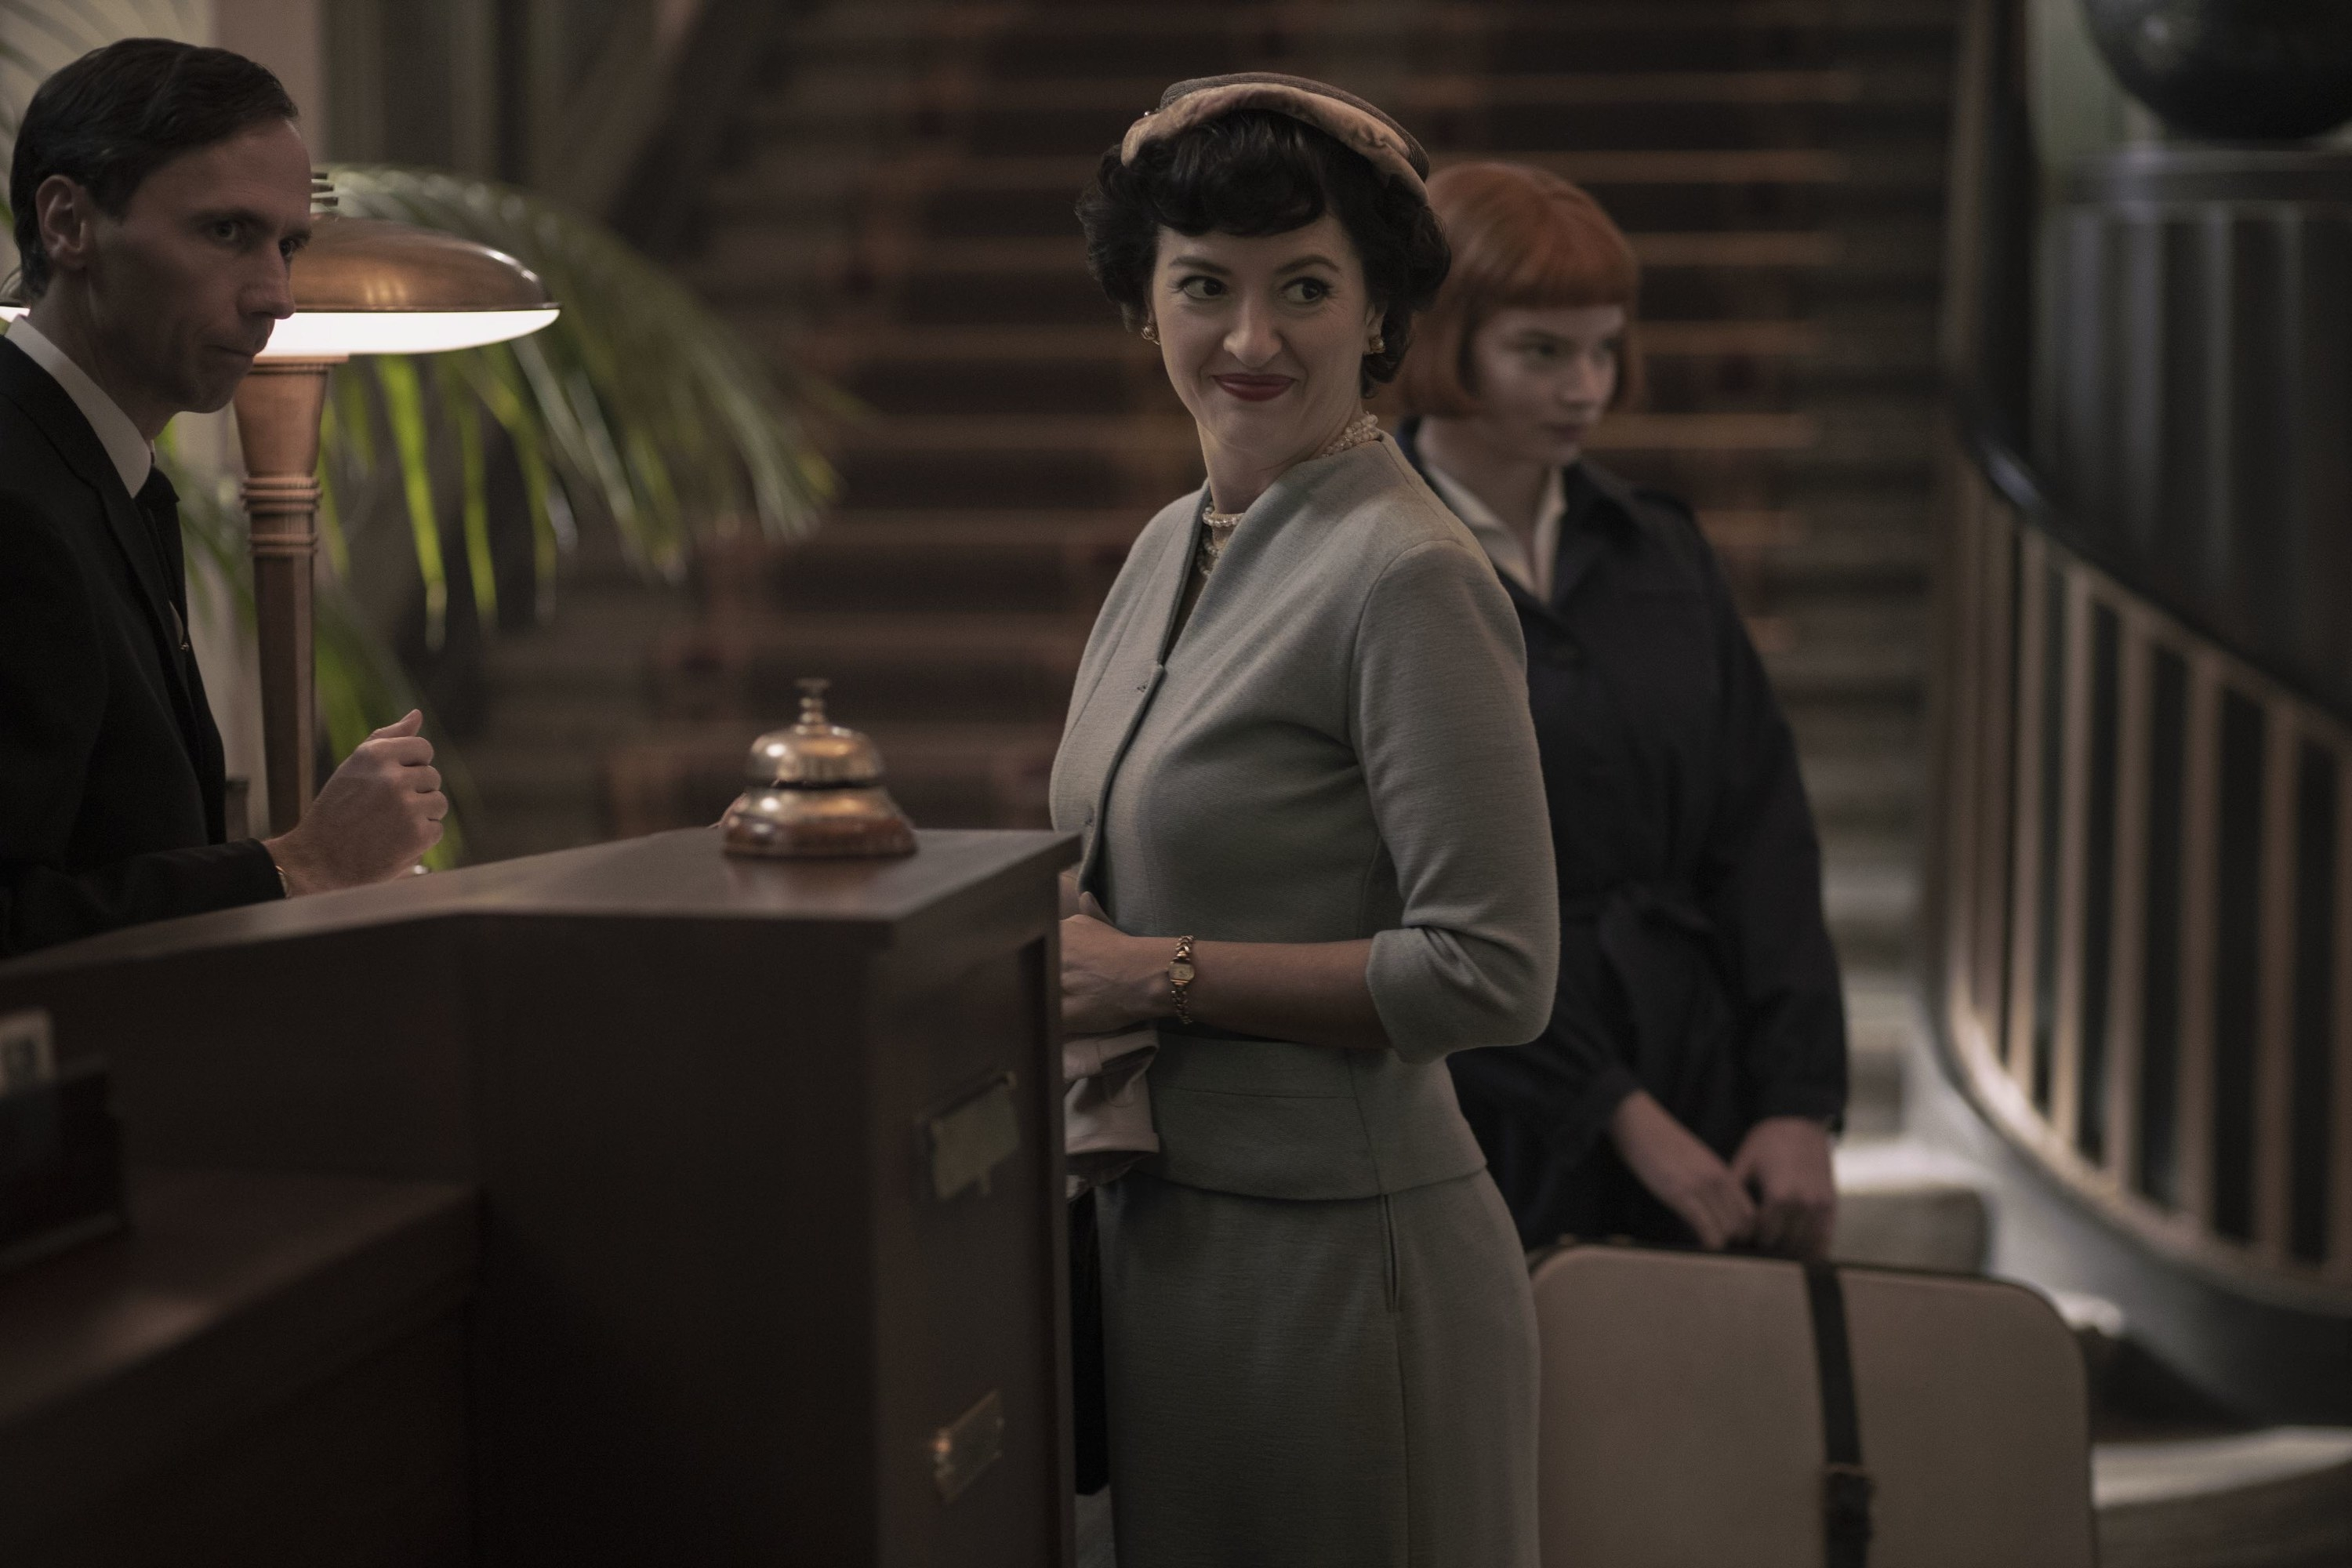 Alma standing in front of a hotel concierge with Beth standing behind her holding a suitcase